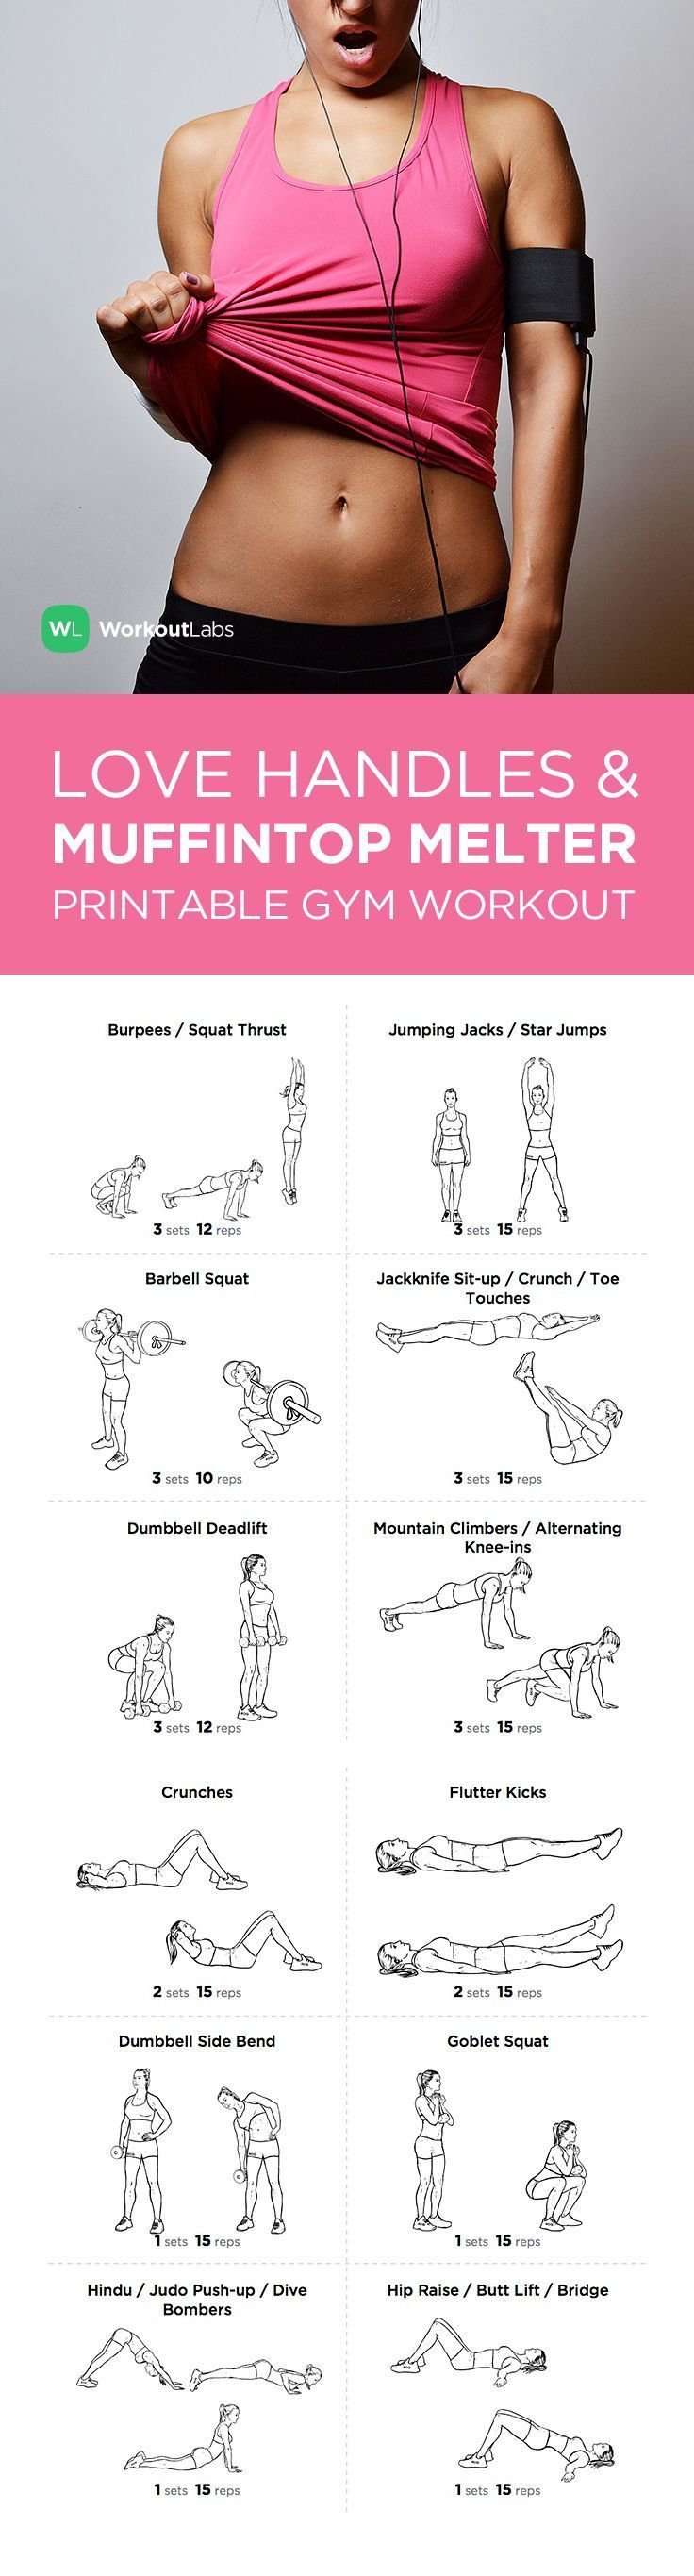 Love Handles and Muffin Top Melter workout!